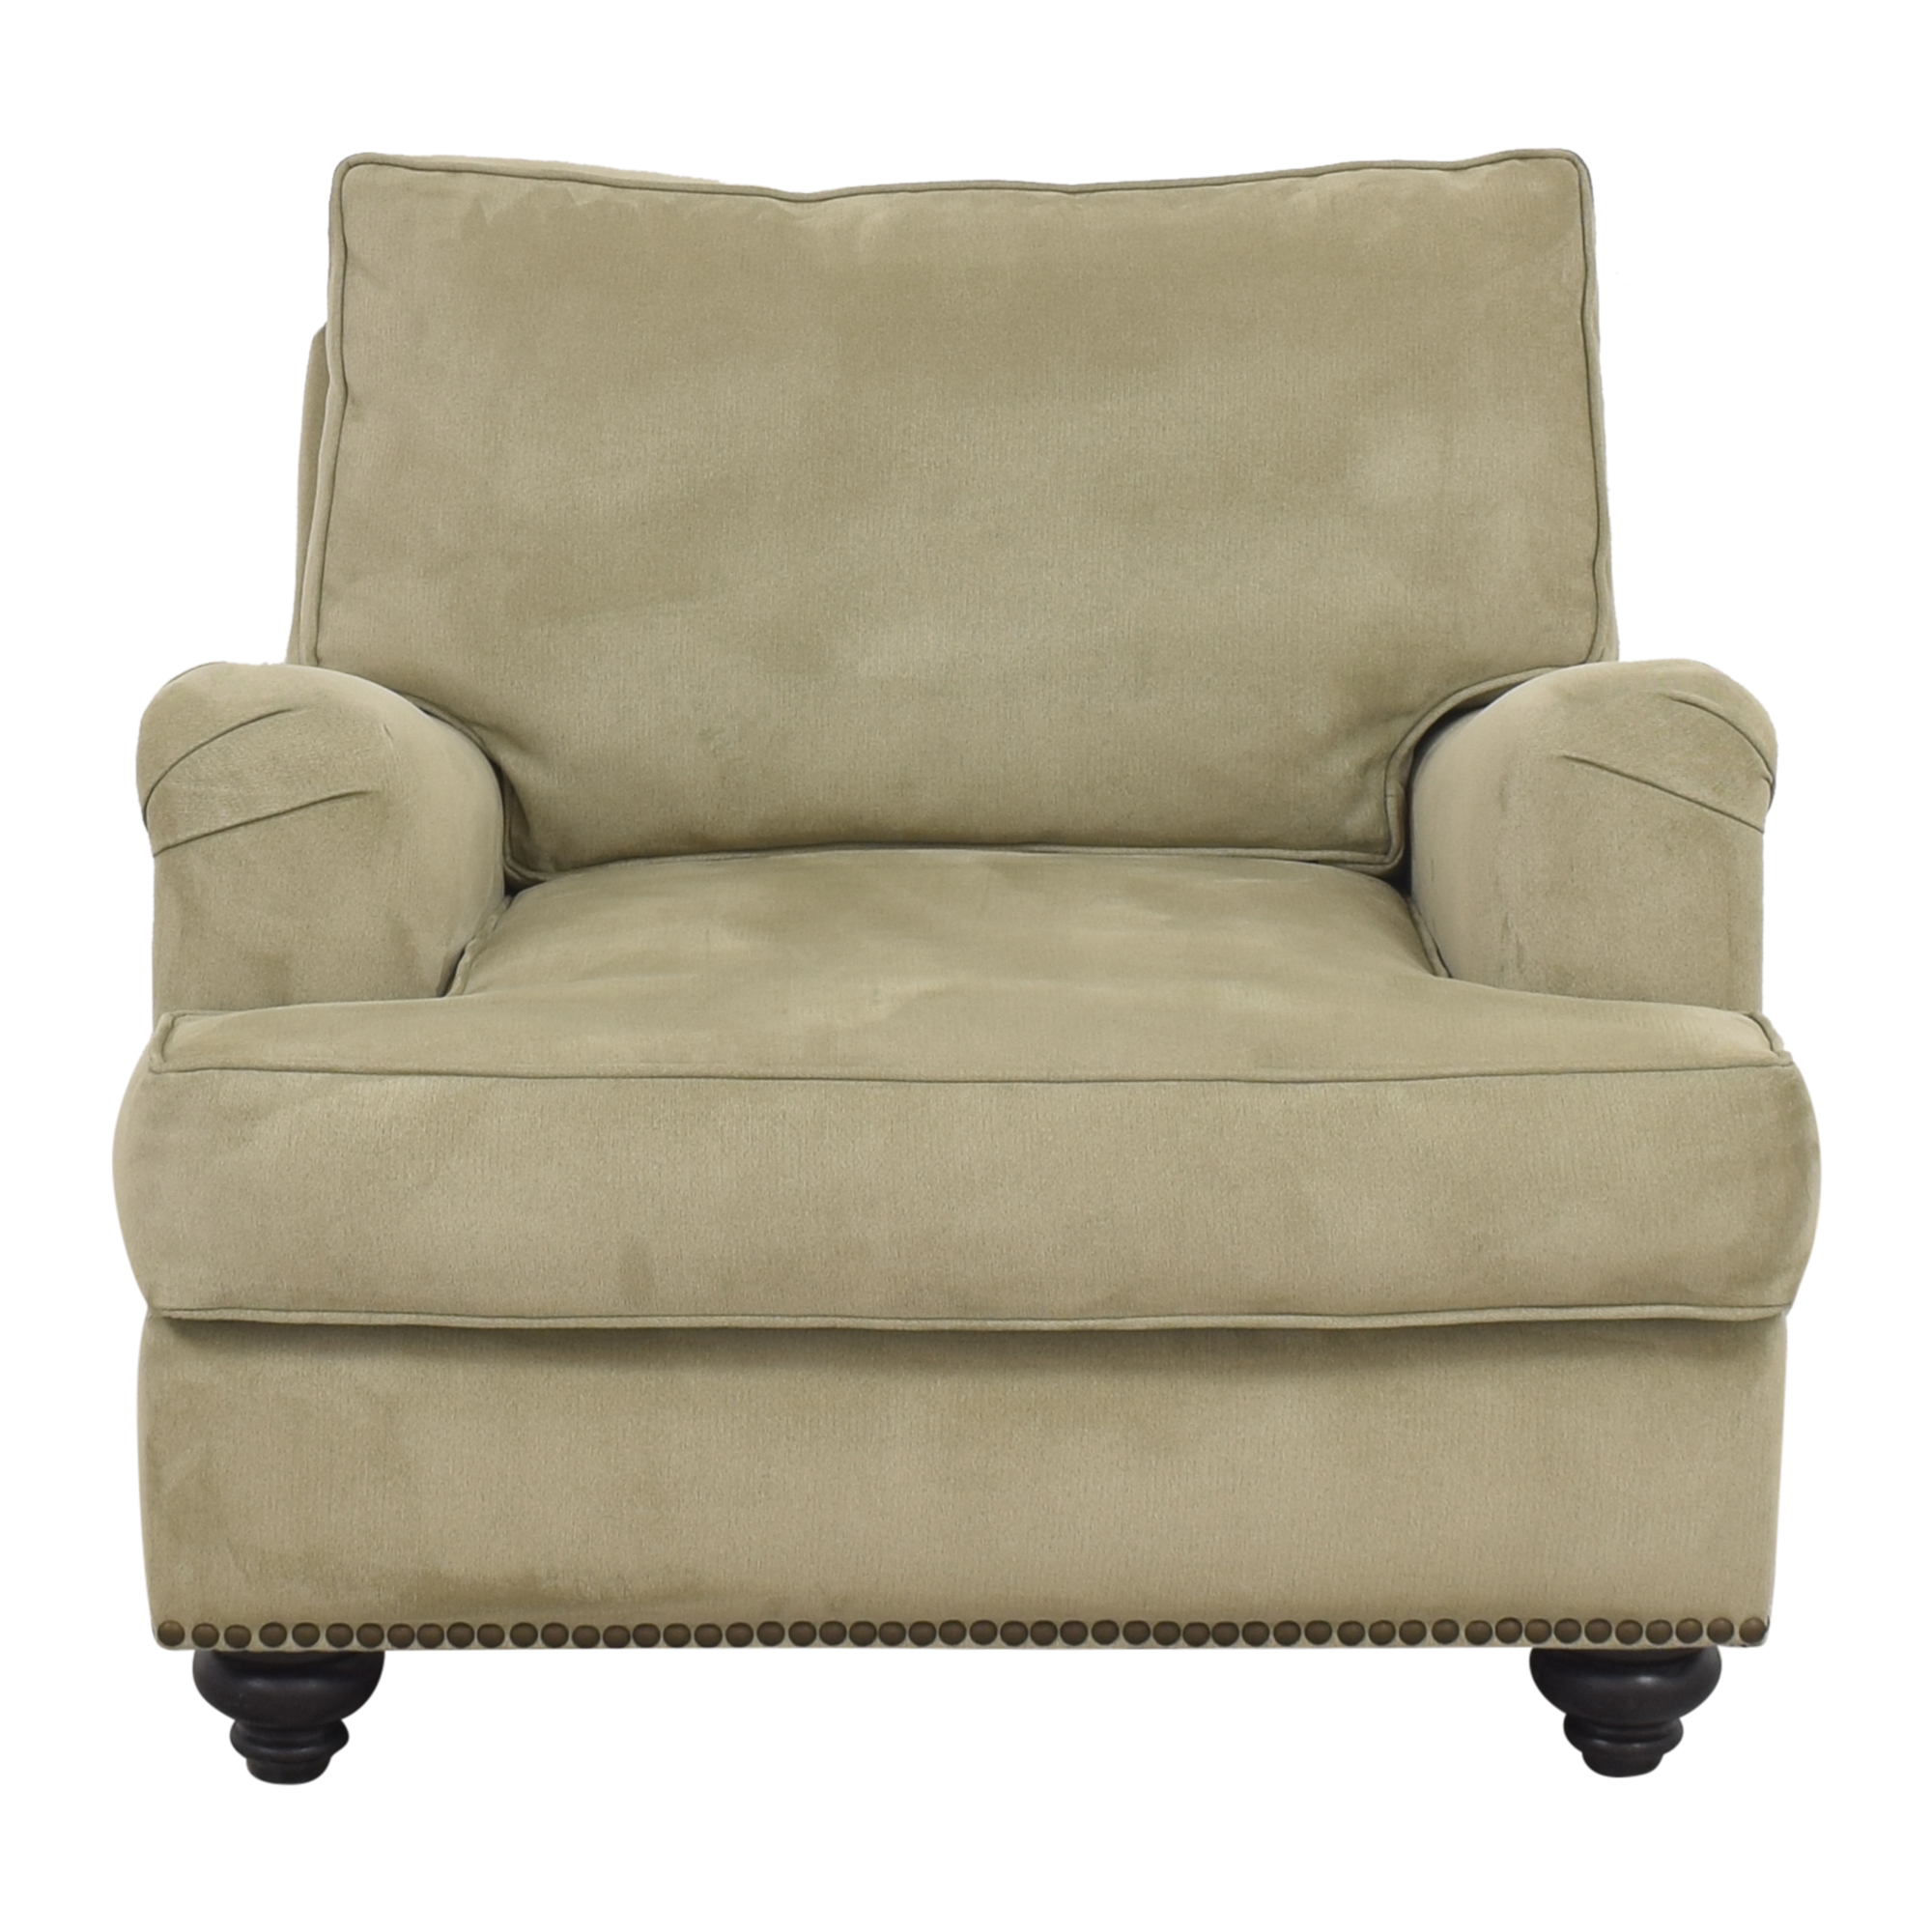 shop  Nailhead Accent Chair with Ottoman online